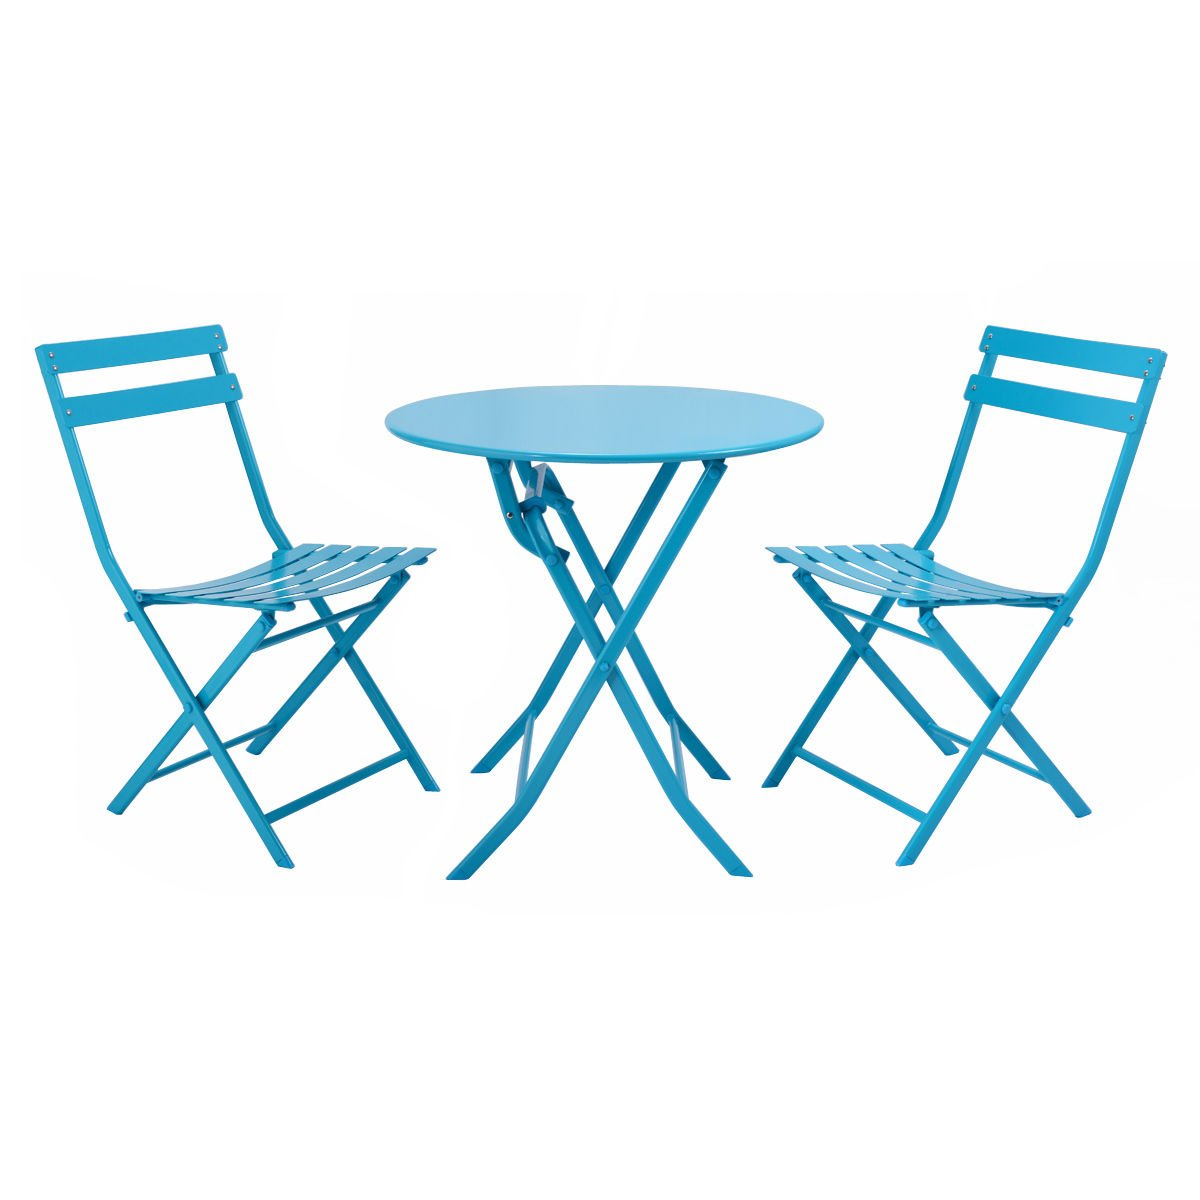 3 Pcs. Blue Table Chair Set Foldable Outdoor Patio Garden Pool Metal Furniture by Allblessings (Image #4)